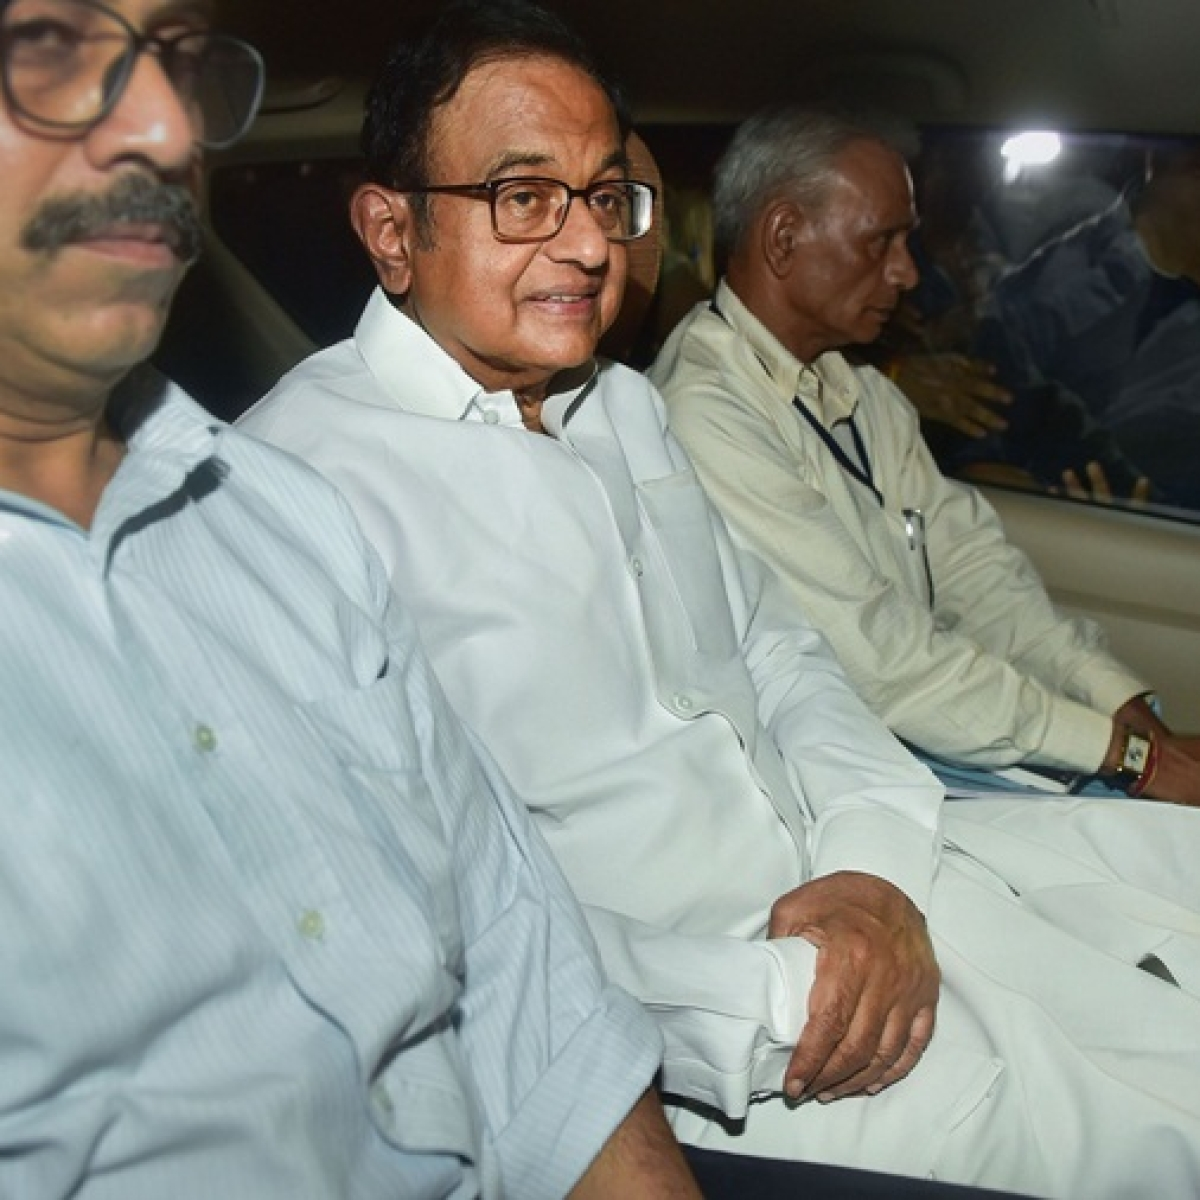 From stunning reappearance to scaling wall: How the drama of P Chidambaram's arrest unfolded